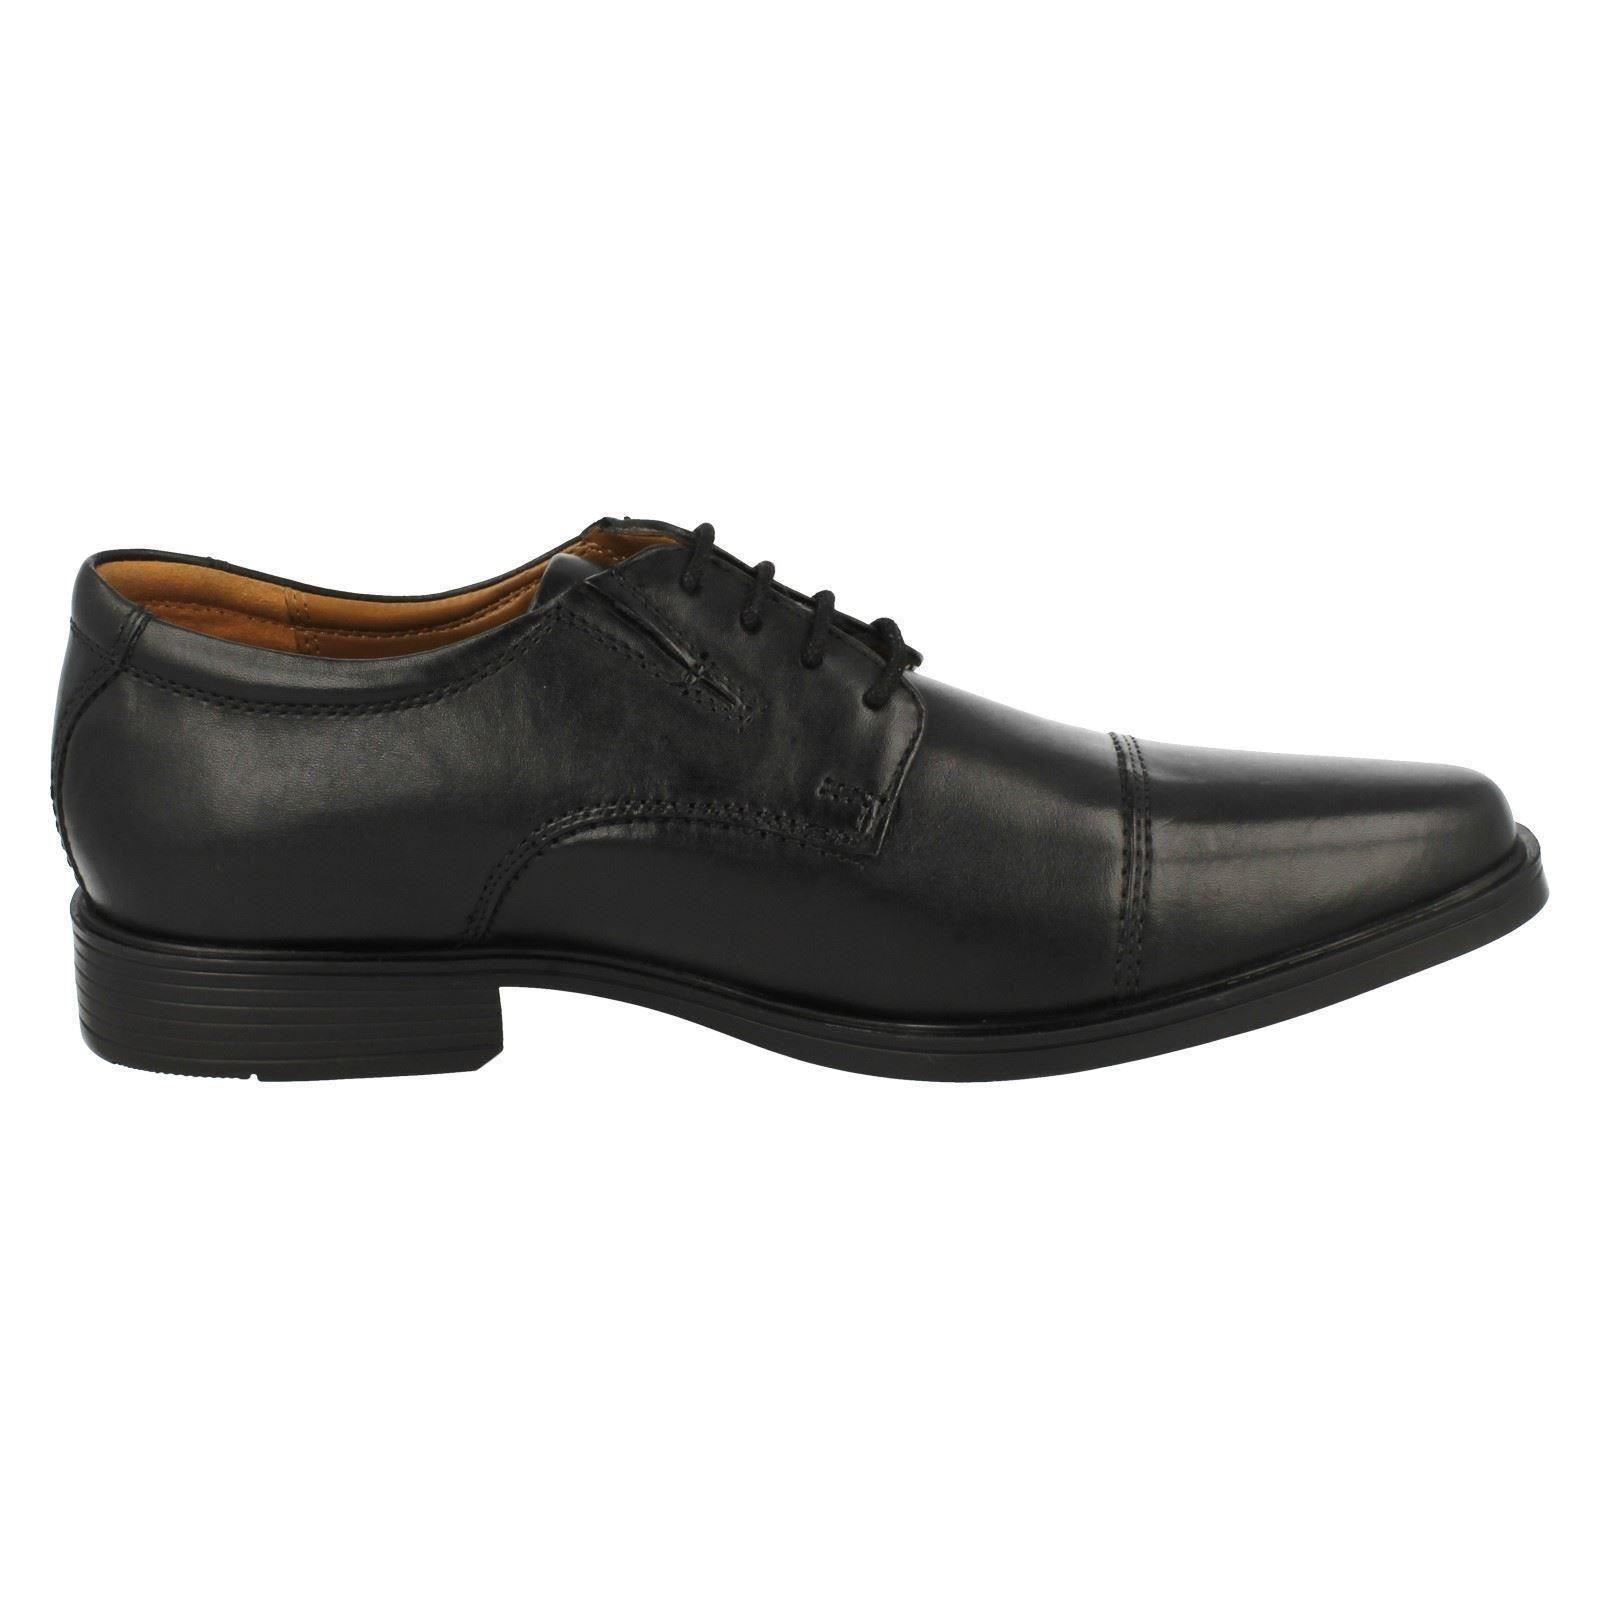 Mens-Clarks-Formal-Lace-Up-Shoes-Tilden-Cap thumbnail 6